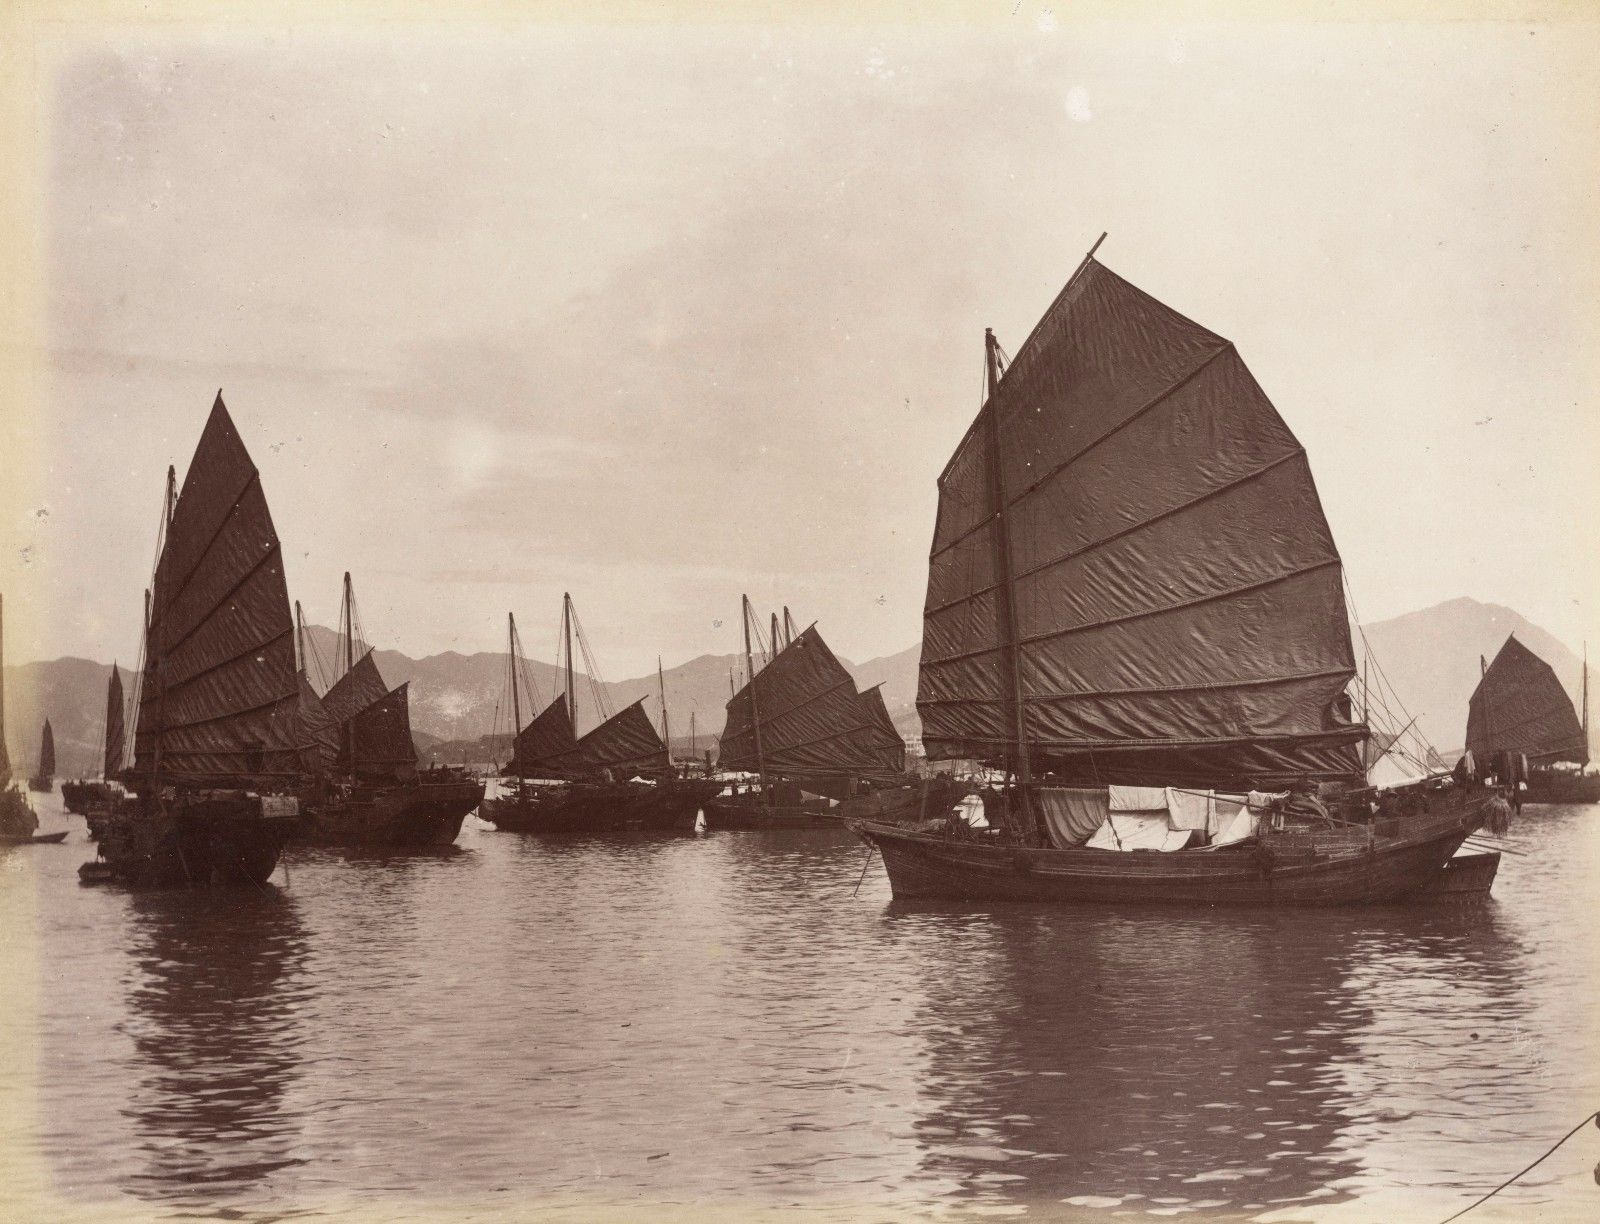 Boats in Guangzhou, China, circa 1880.